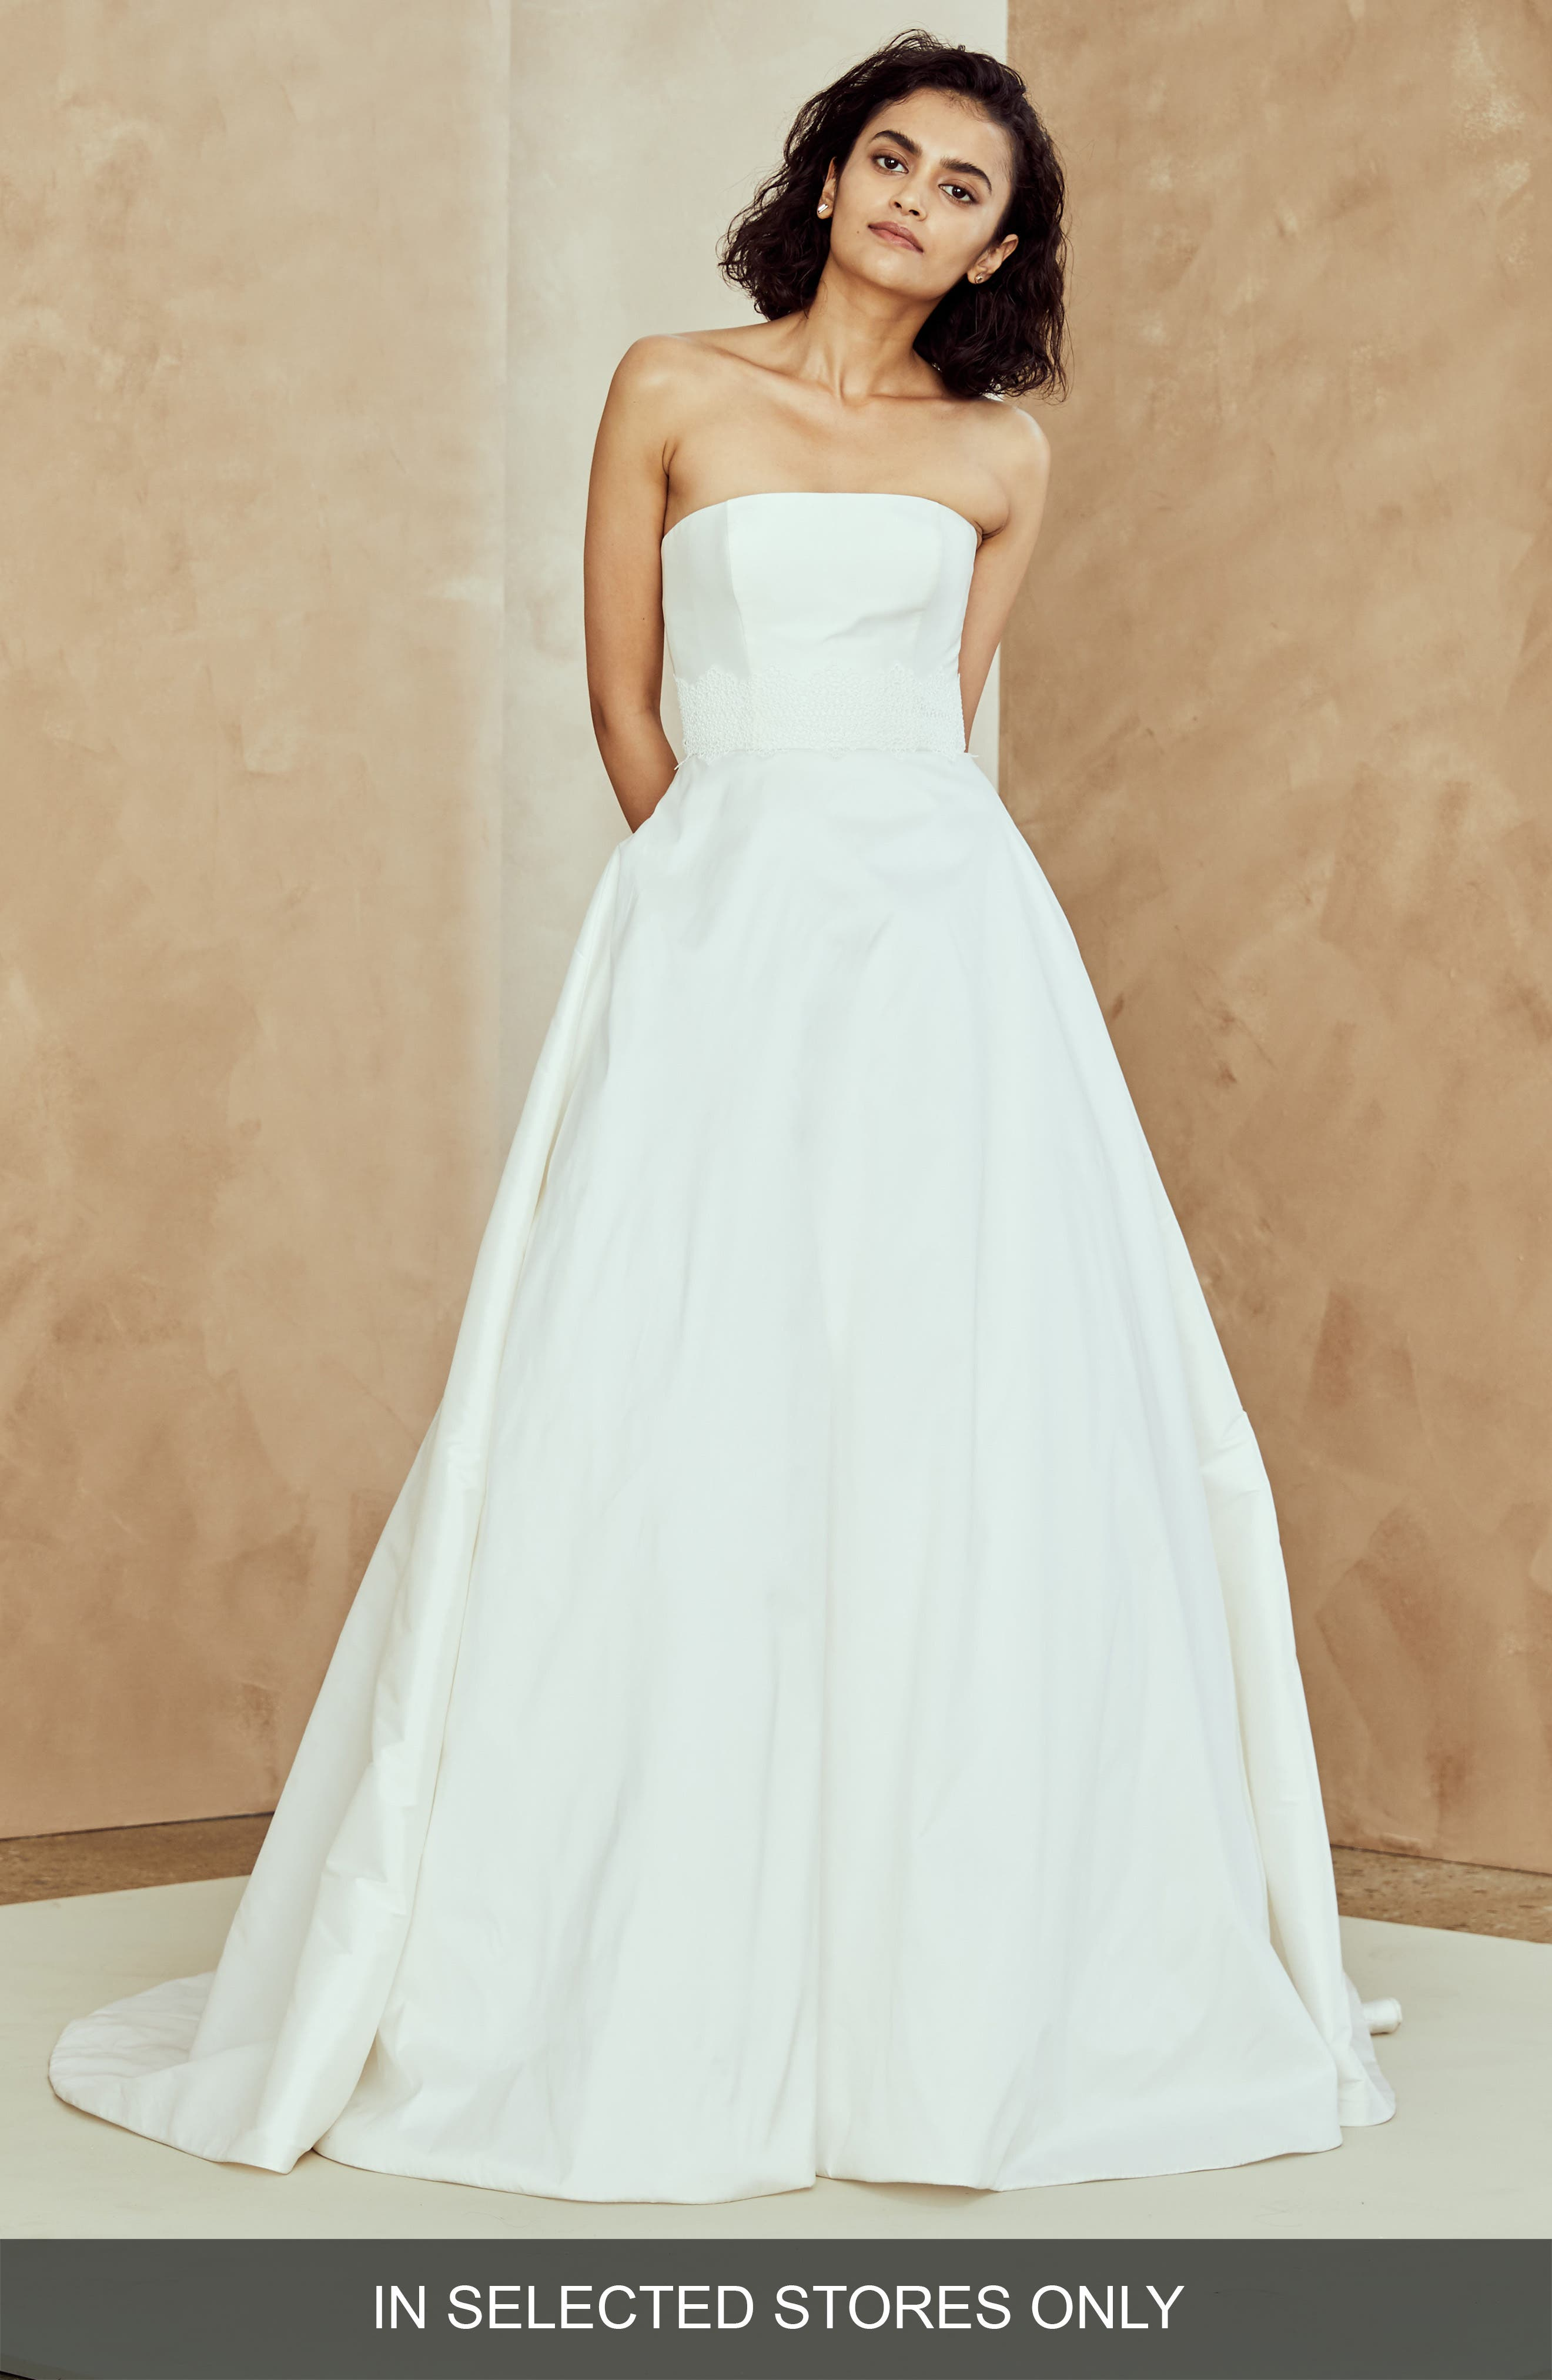 Nouvelle Amsale Ana Strapless Ballgown, Size IN STORE ONLY - Ivory